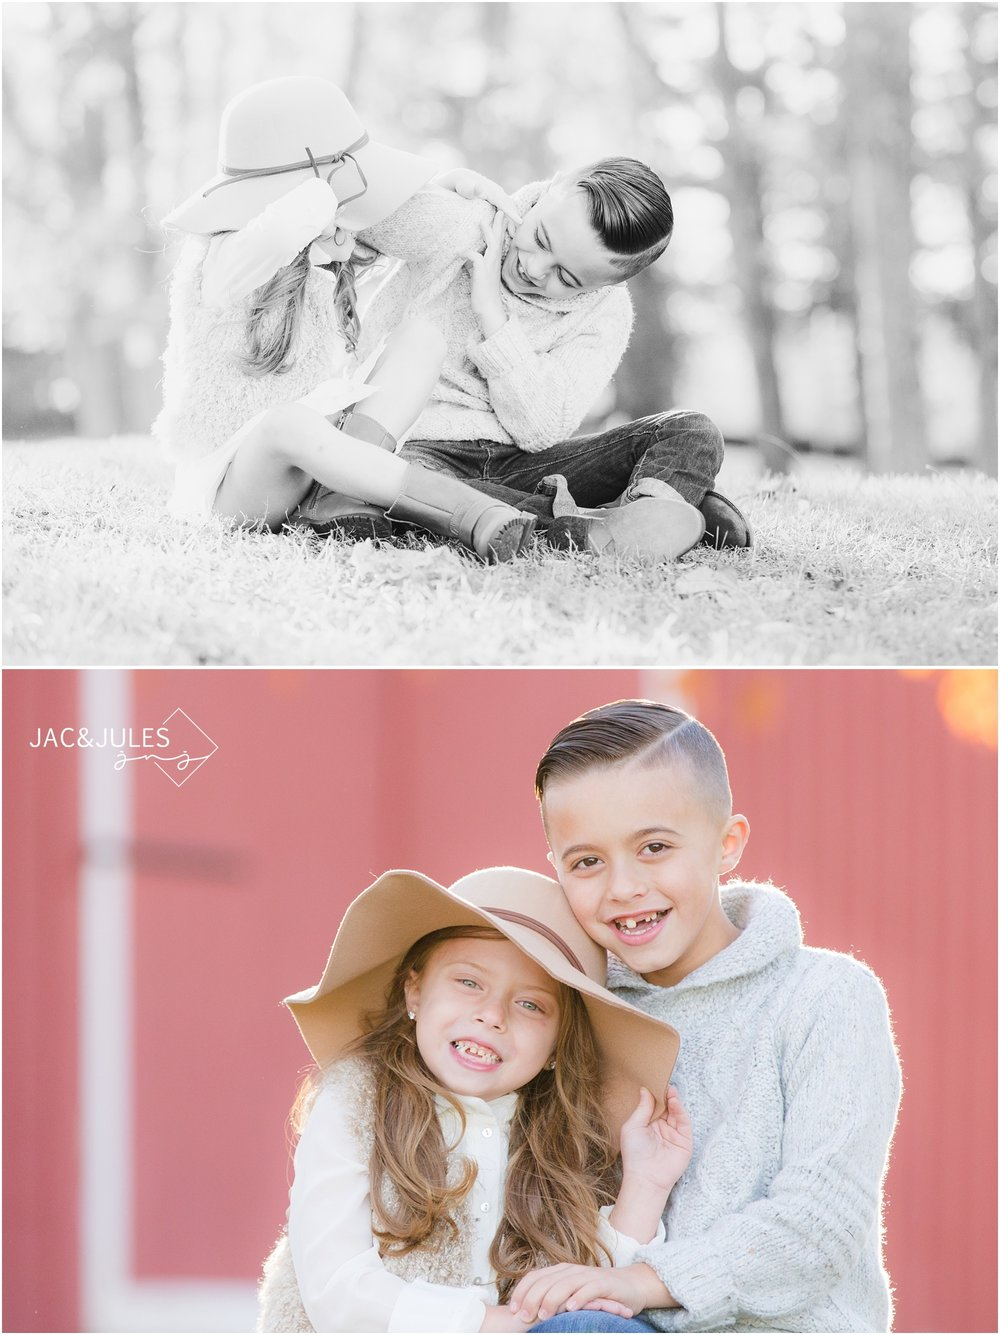 Fun sibling photos at Bayonet Farm in Holmdel, NJ.